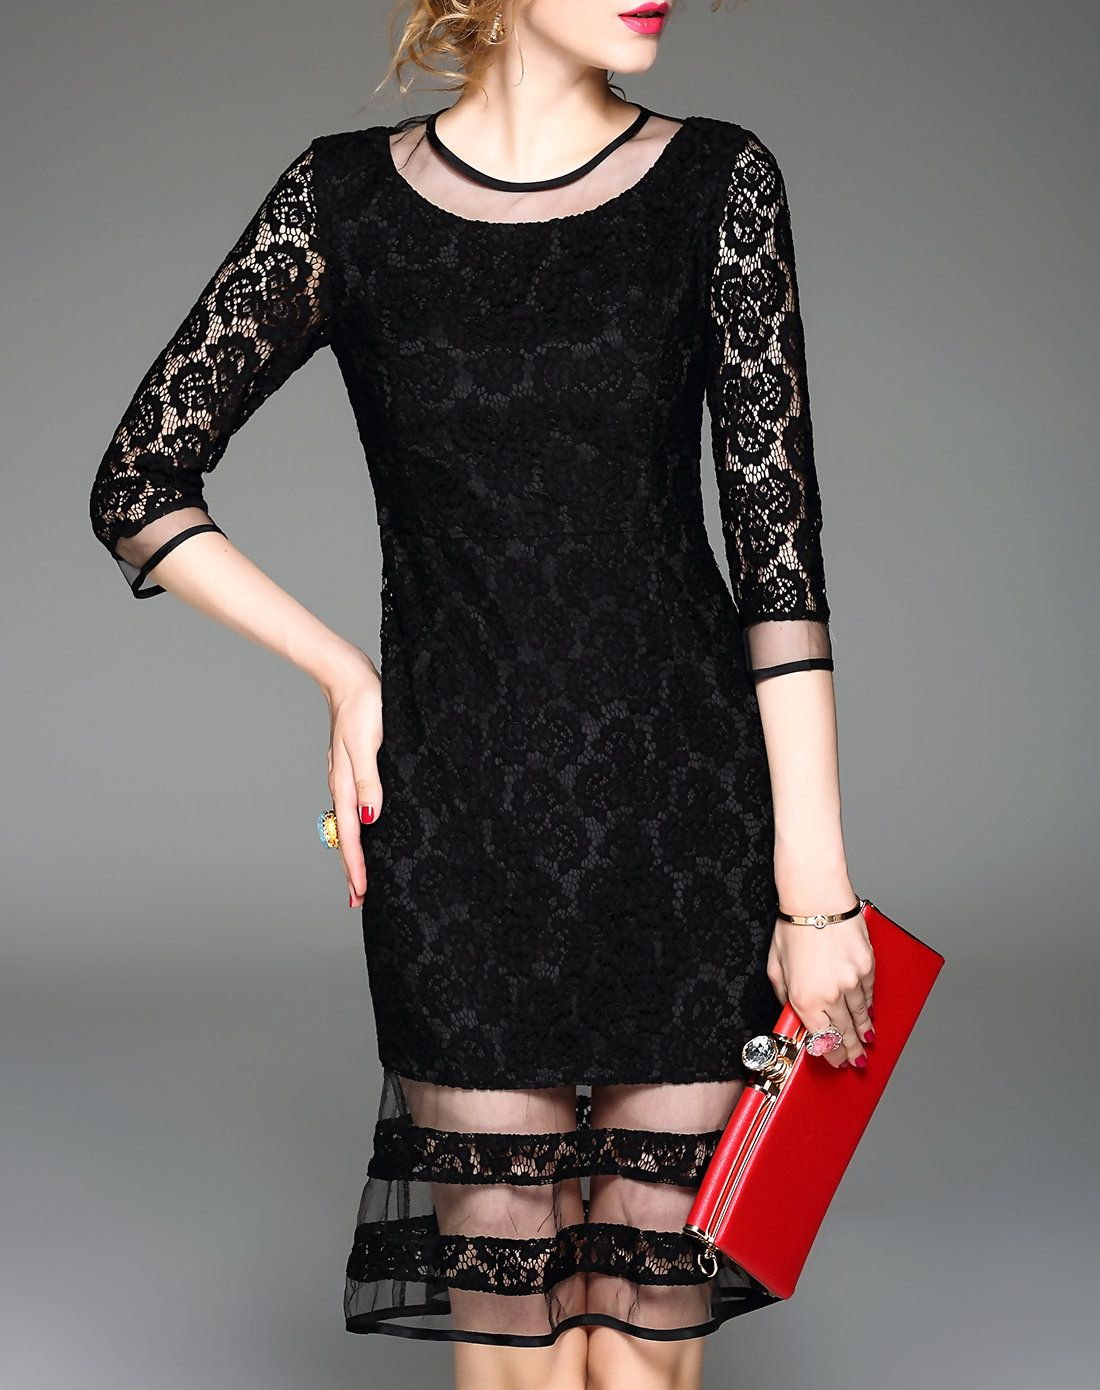 Adorewe too tang black sexy lace semi sheer peplum hem mini dress